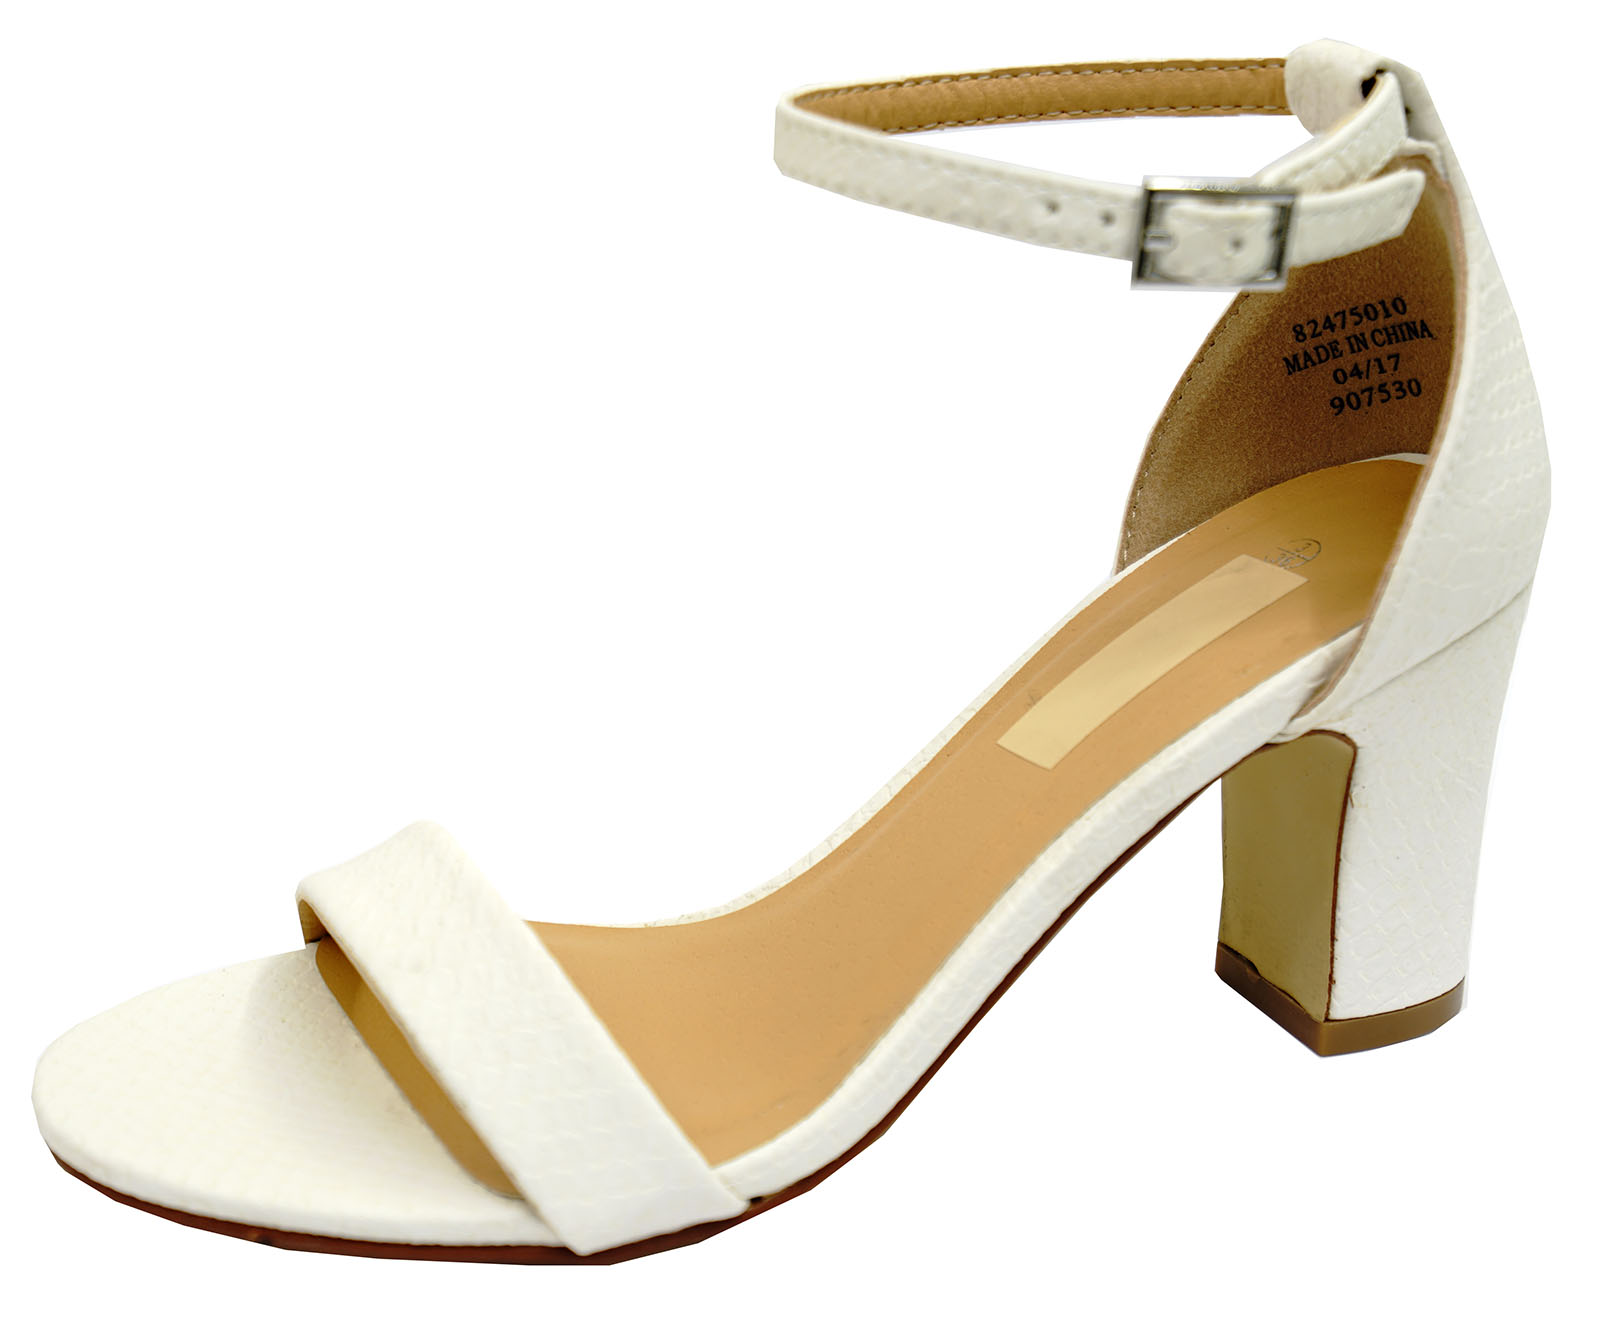 LADIES-WHITE-ANKLE-STRAP-BLOCK-HEEL-PEEPTOE-SANDALS-HOLIDAY-COMFY-SHOES-UK-3-8 thumbnail 5